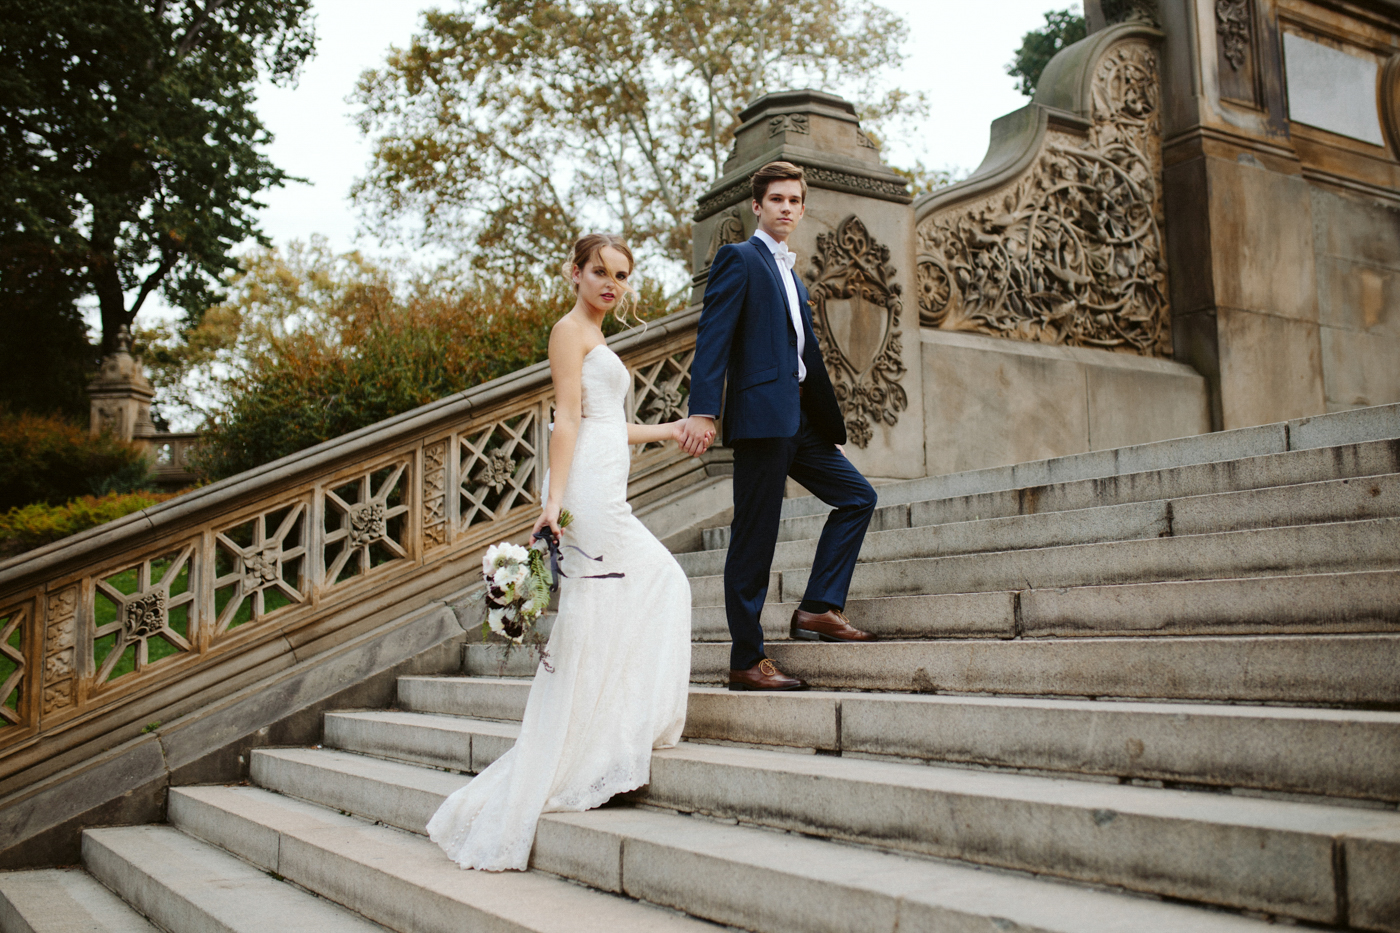 NYC New York City Elopement Photography Central Park Fine Art Destination Photographer